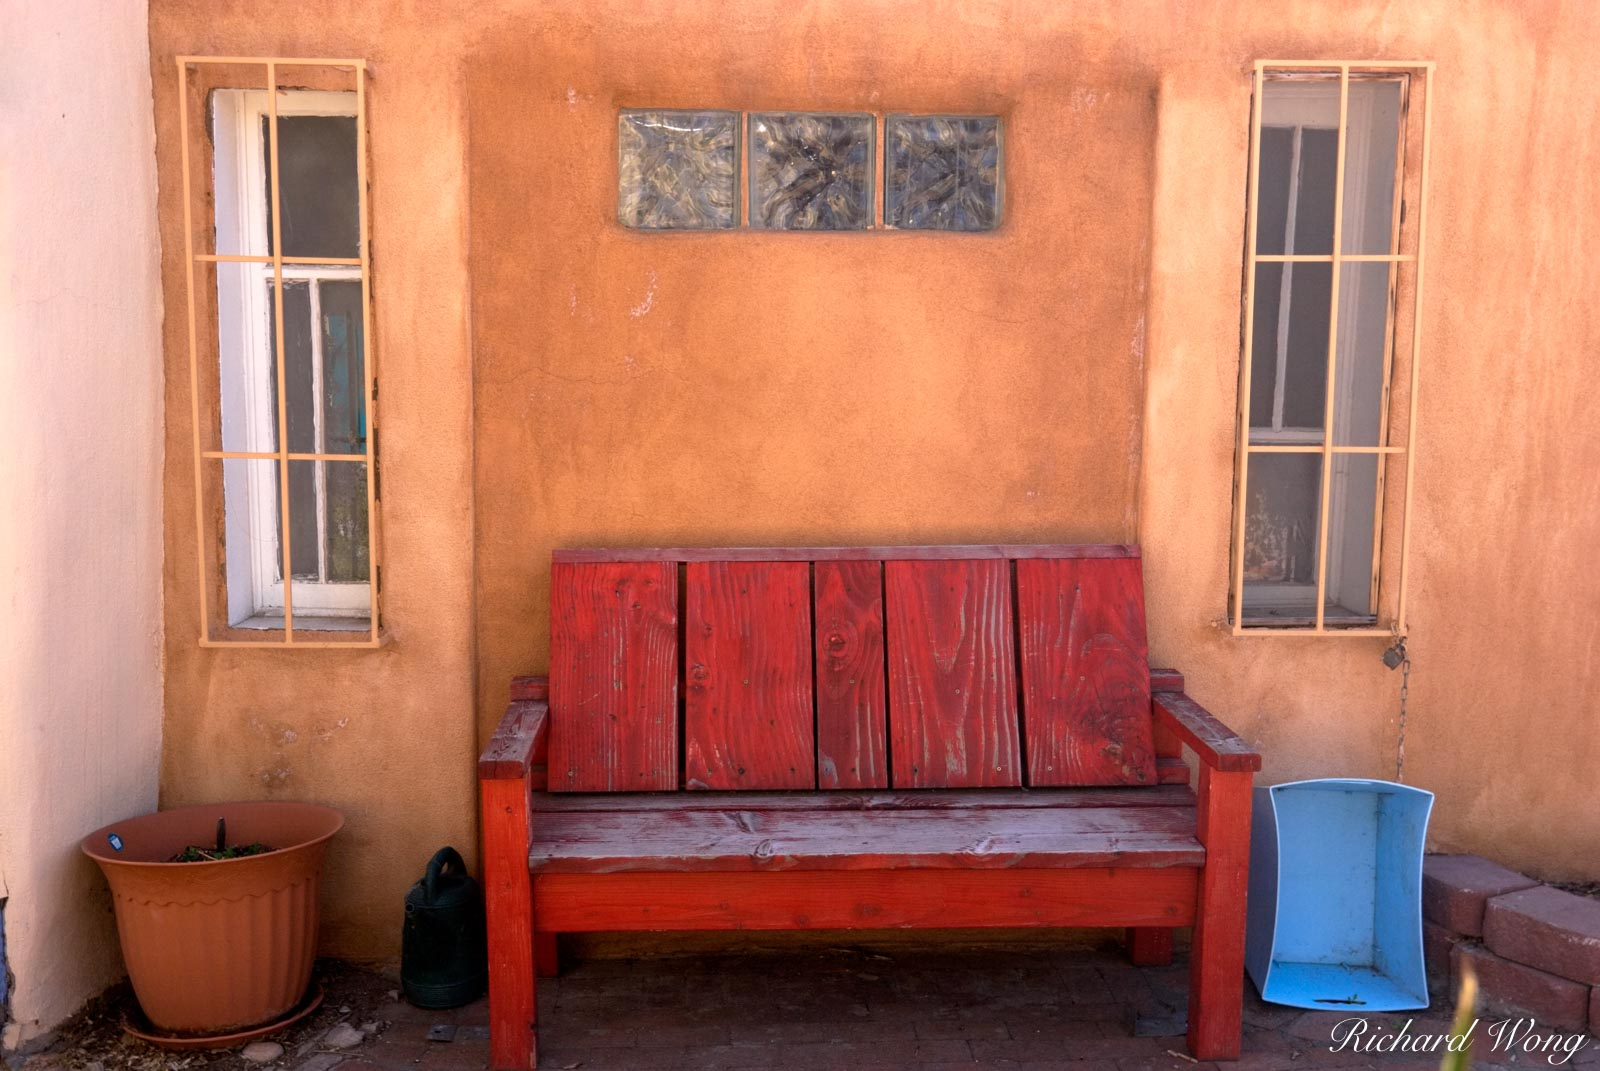 Red Bench Against Adobe Wall at Old Town Plaza, Albuquerque, New Mexico, photo, photo